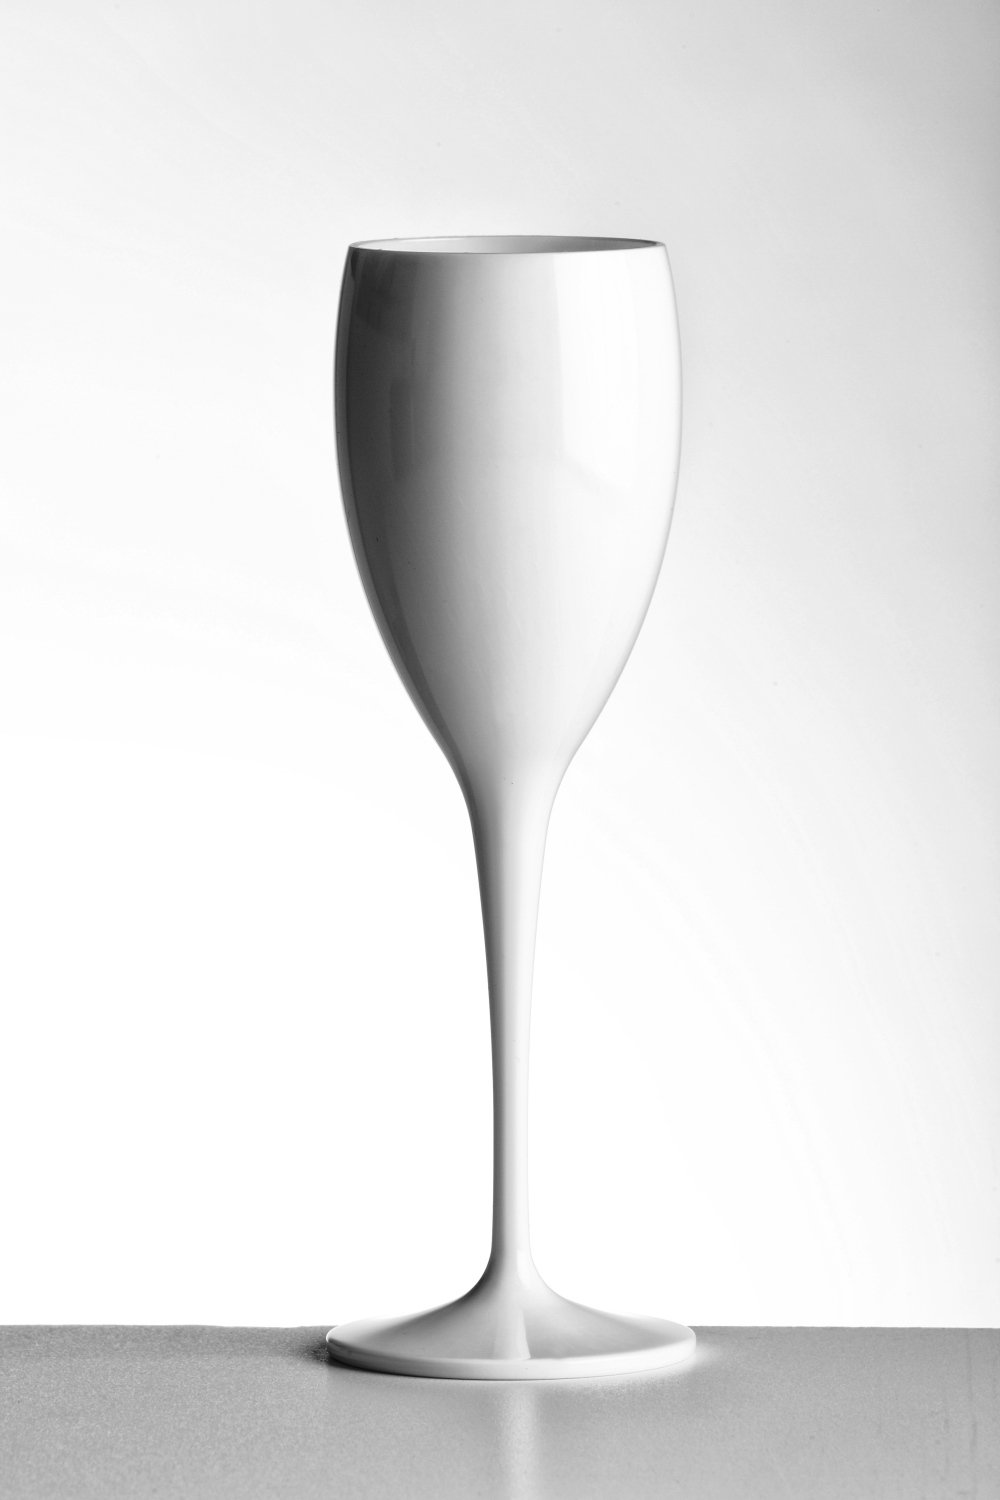 Avenue's Dishwasher Safe Unbreakable Reusable Polycarbonate High Quality White Champagne Flutes 180ml / 6oz.Offer Pack of 6 glasses with 4 x AIOS drinks mats in box. As seen on Love Island (ITV)